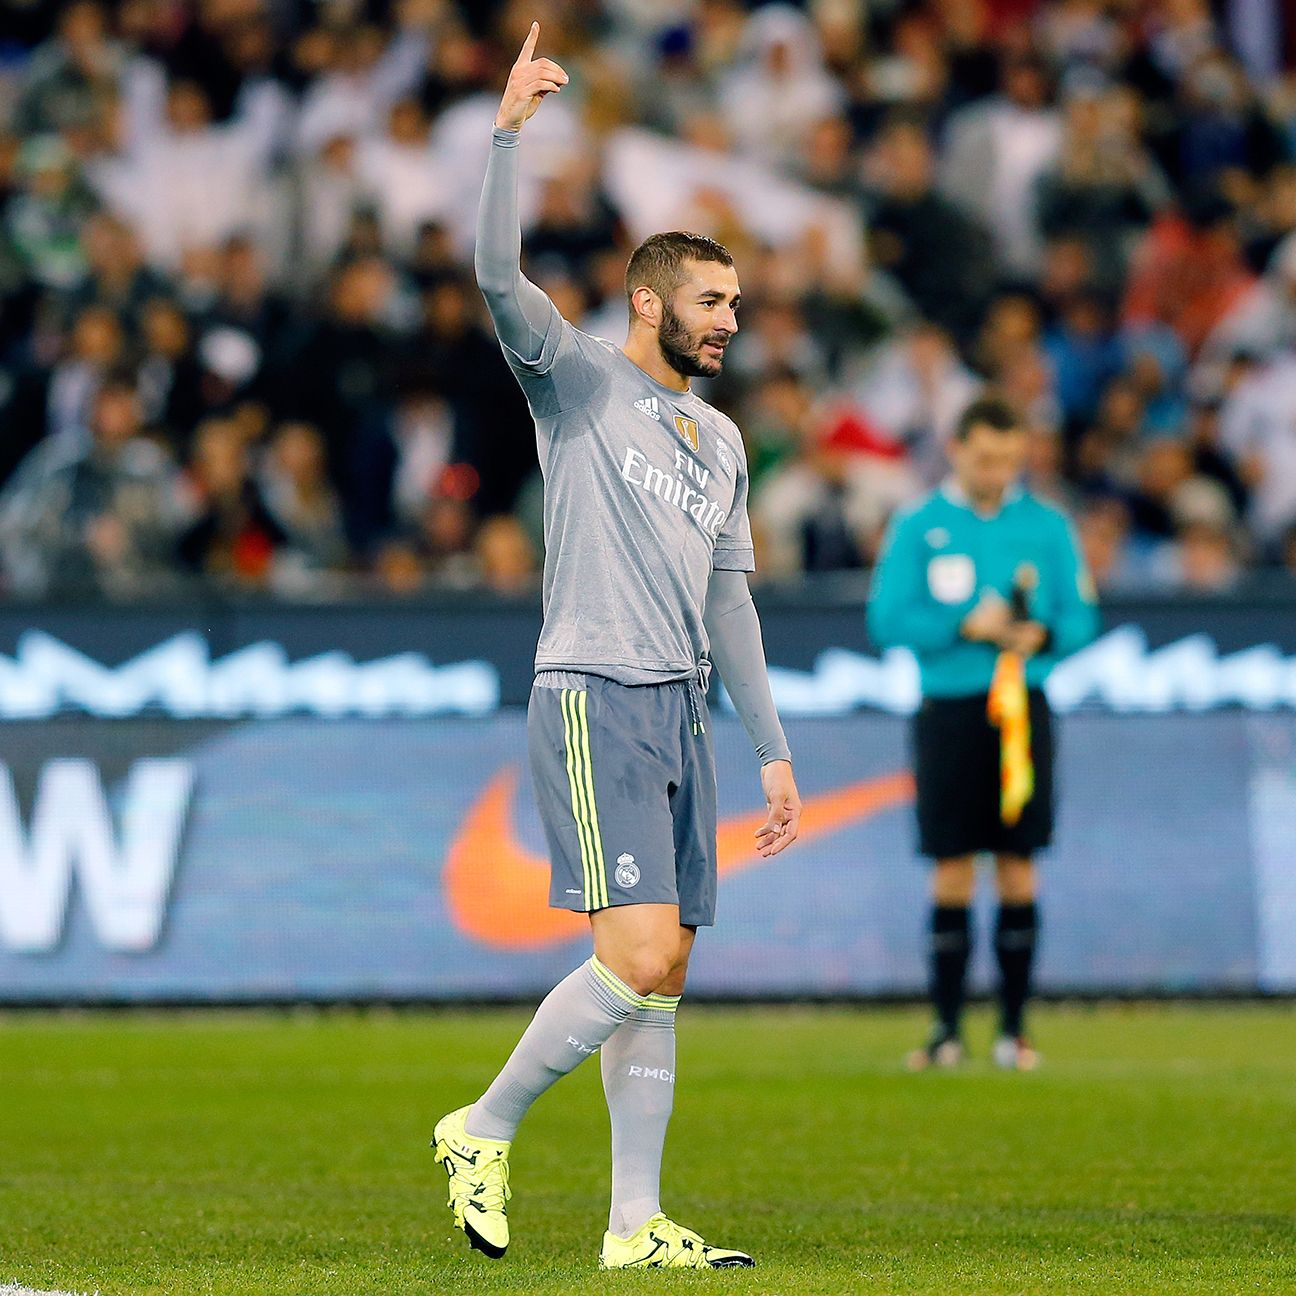 With Karim Benzema back and attracting attention from central defenders, Real Madrid's attack should have better success against Betis.